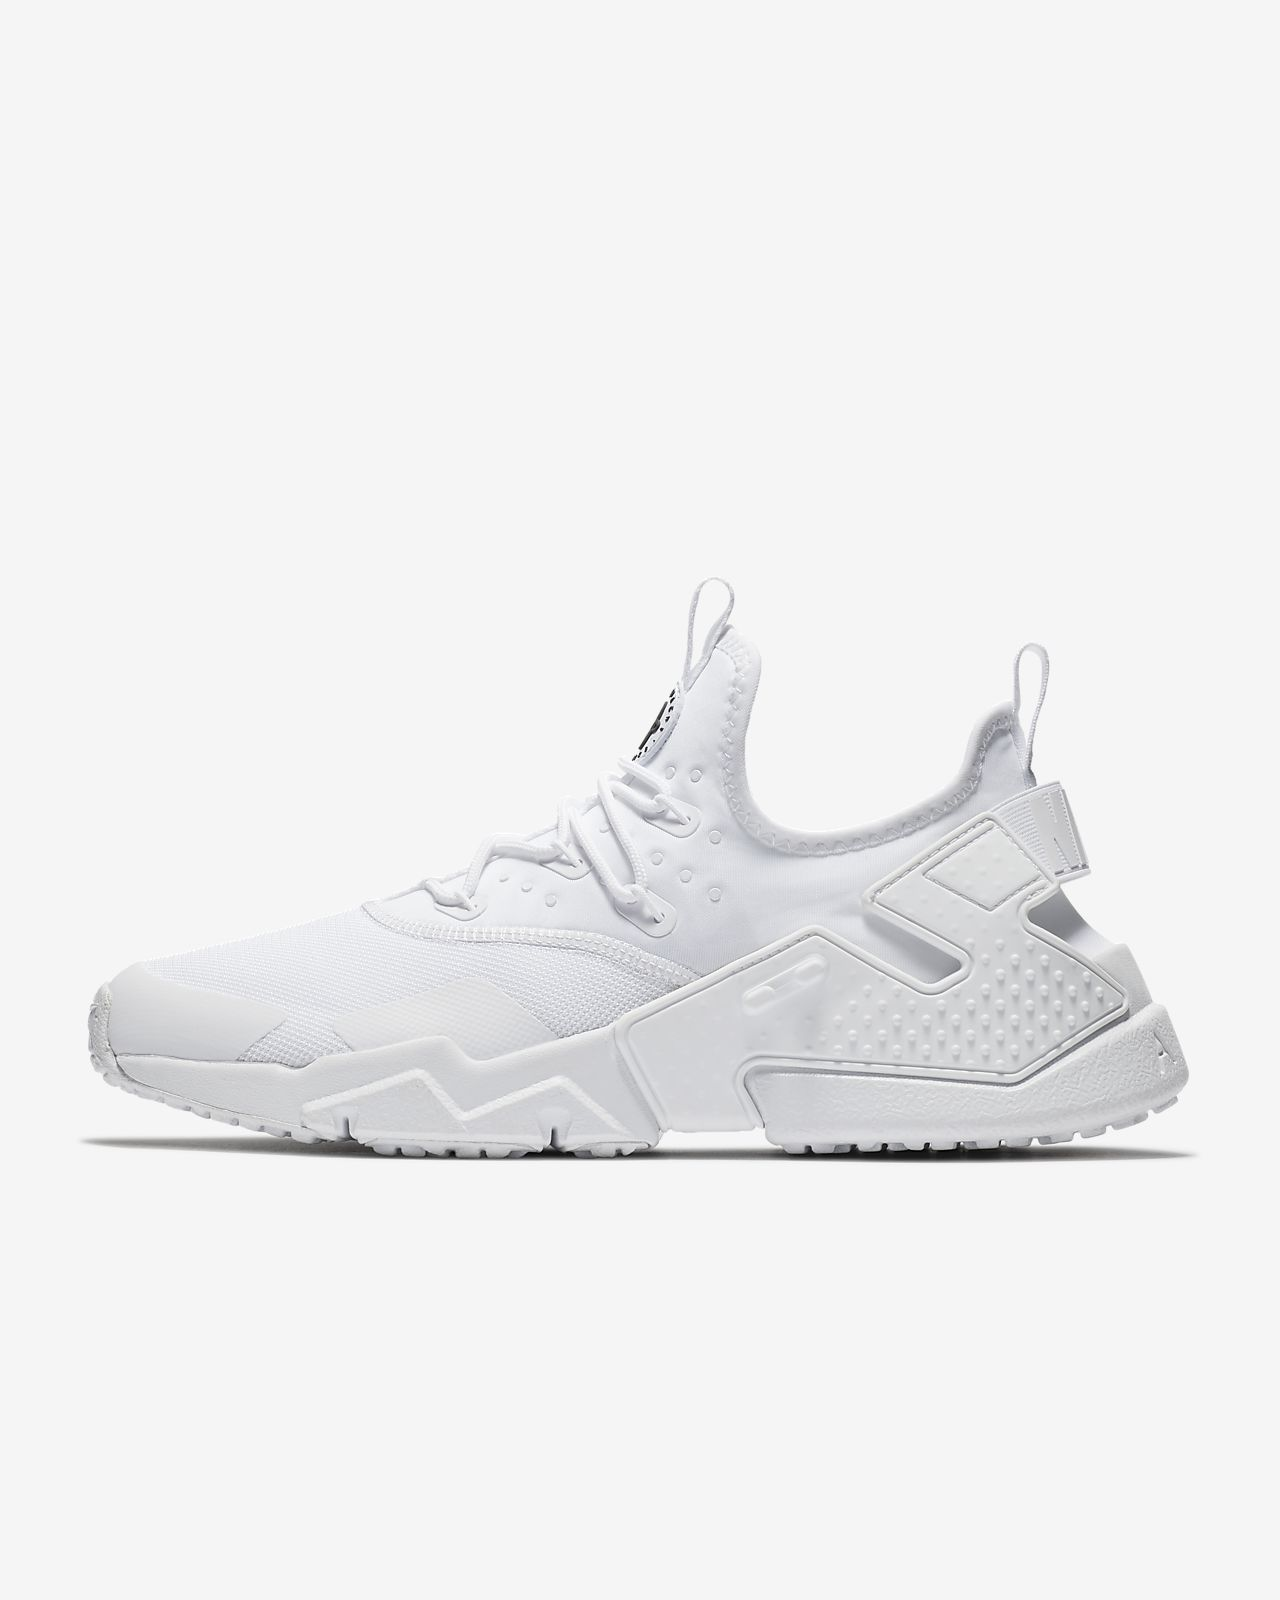 2f8962358e5 Nike Air Huarache Drift Men s Shoe. Nike.com